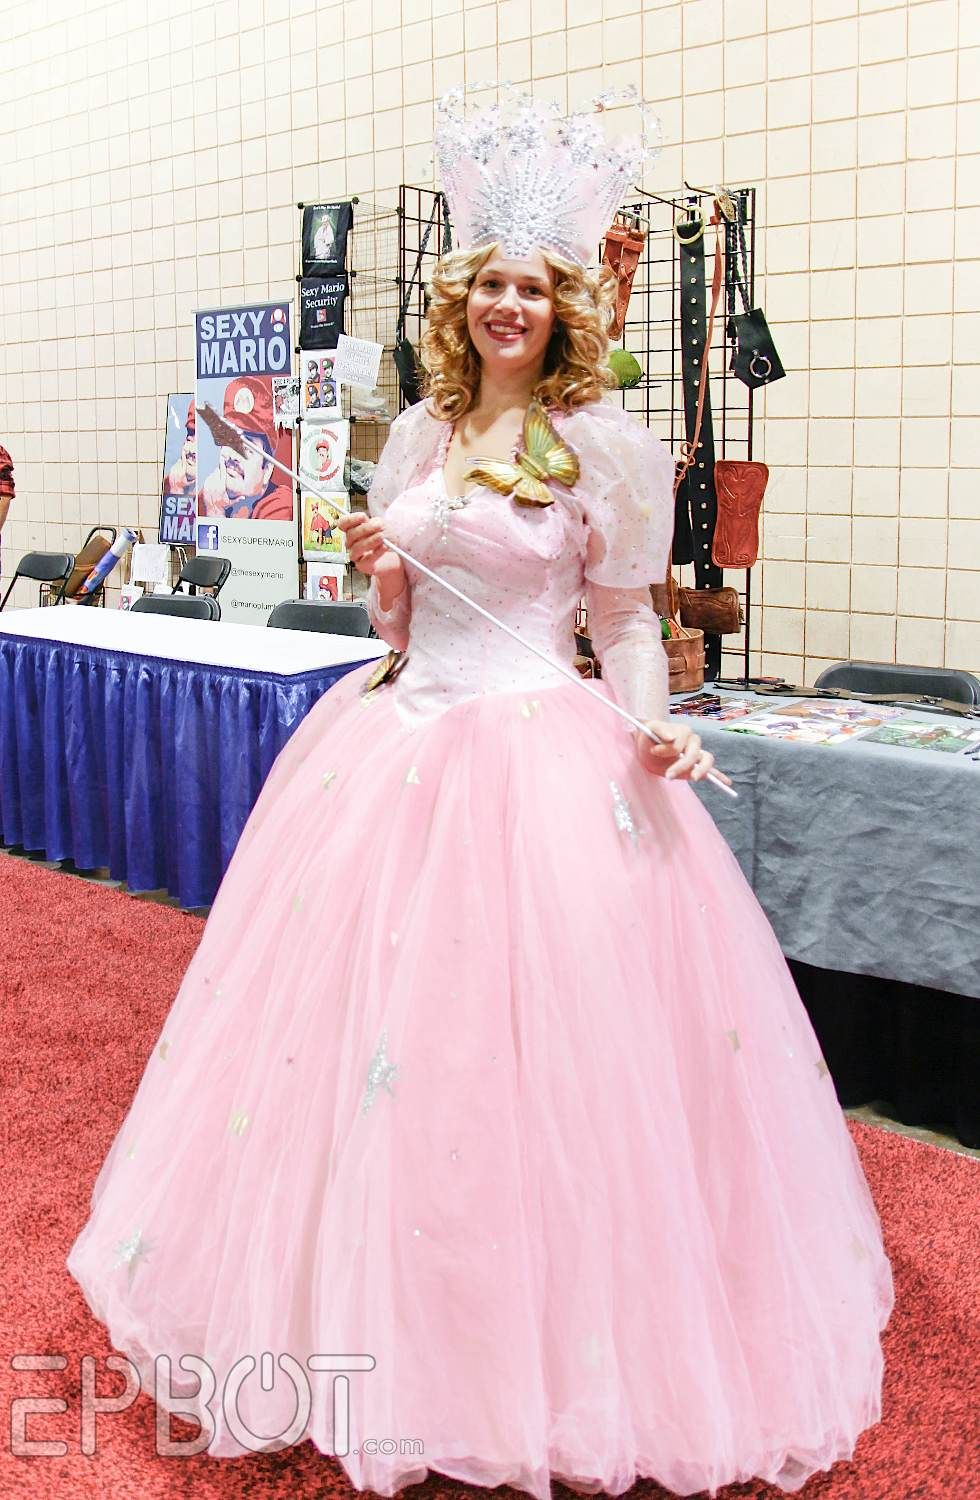 EPBOT: Tampa Bay Comic-Con 2015, Part 1 | WIZARD OF OZ in